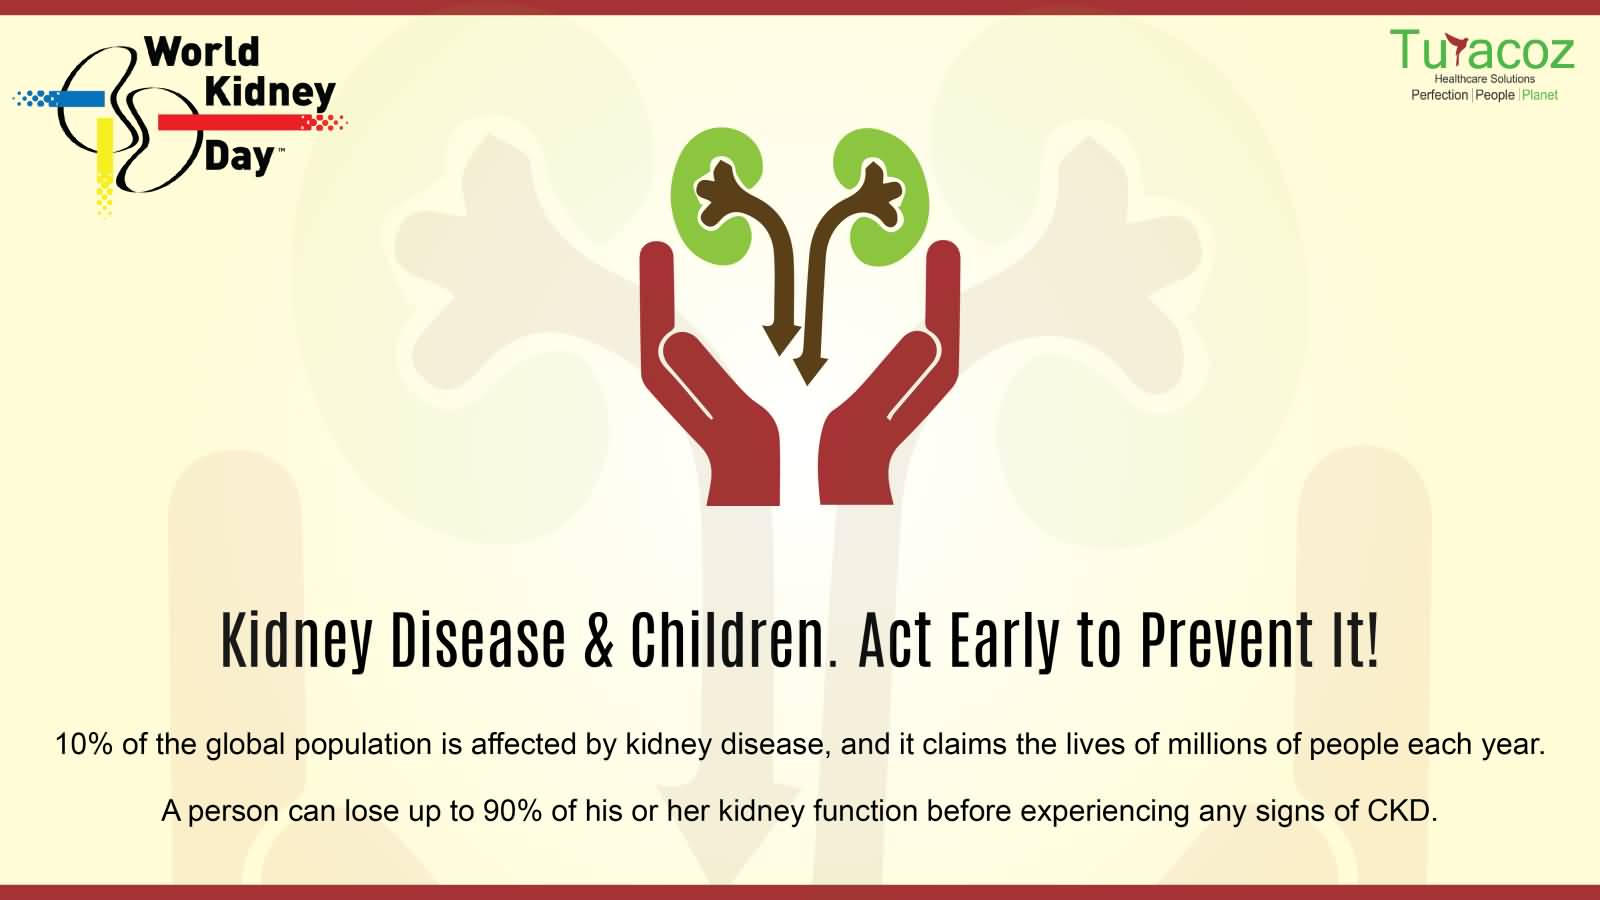 Kidney Disease & Children. Act Early To Prevent It World Kidney Day